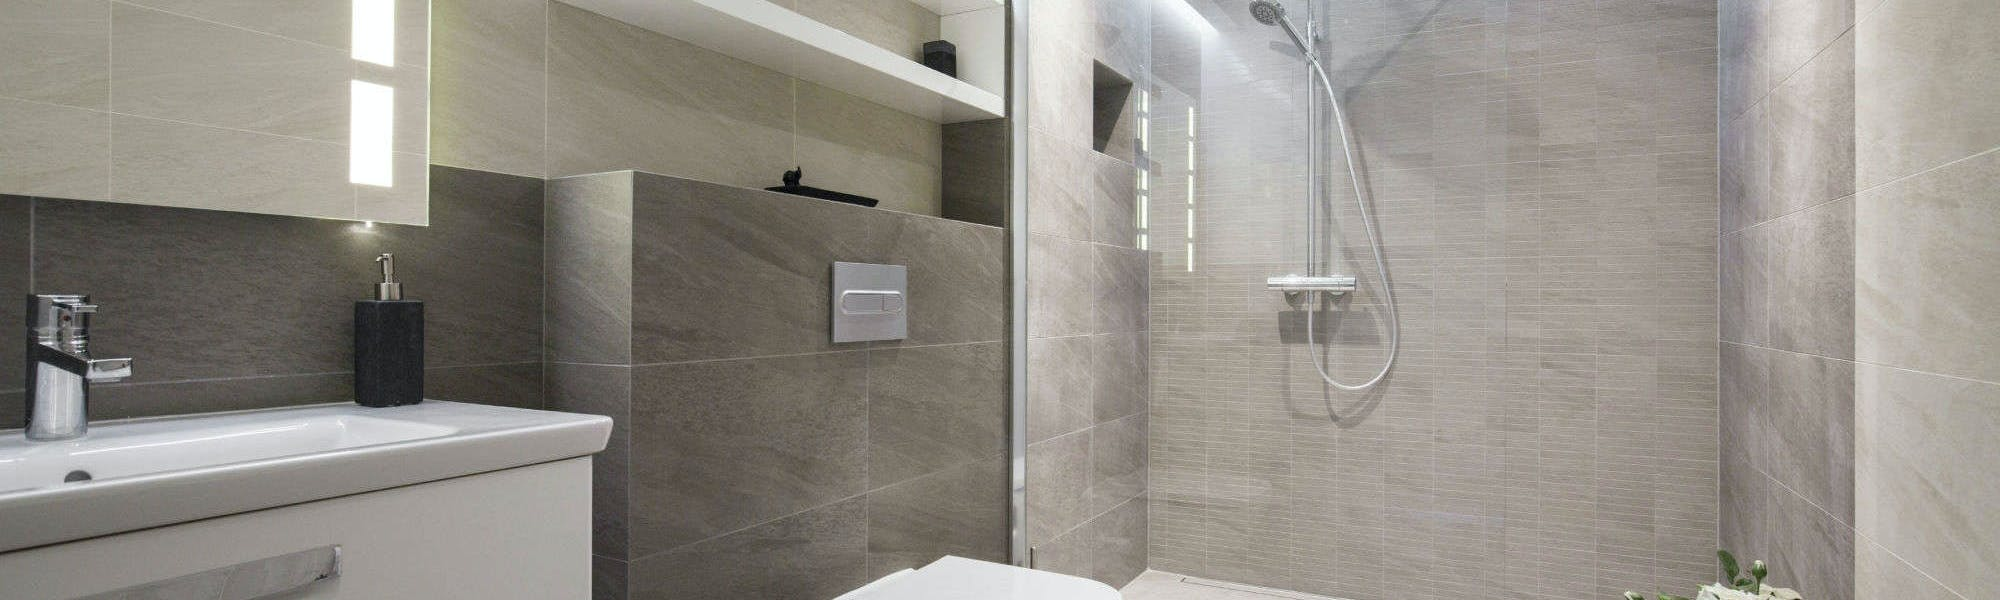 Natural in appearance, both ceramic and porcelain, bathroom tiles lend themselves perfectly to creating a modern, clean and luxurious look and feel.